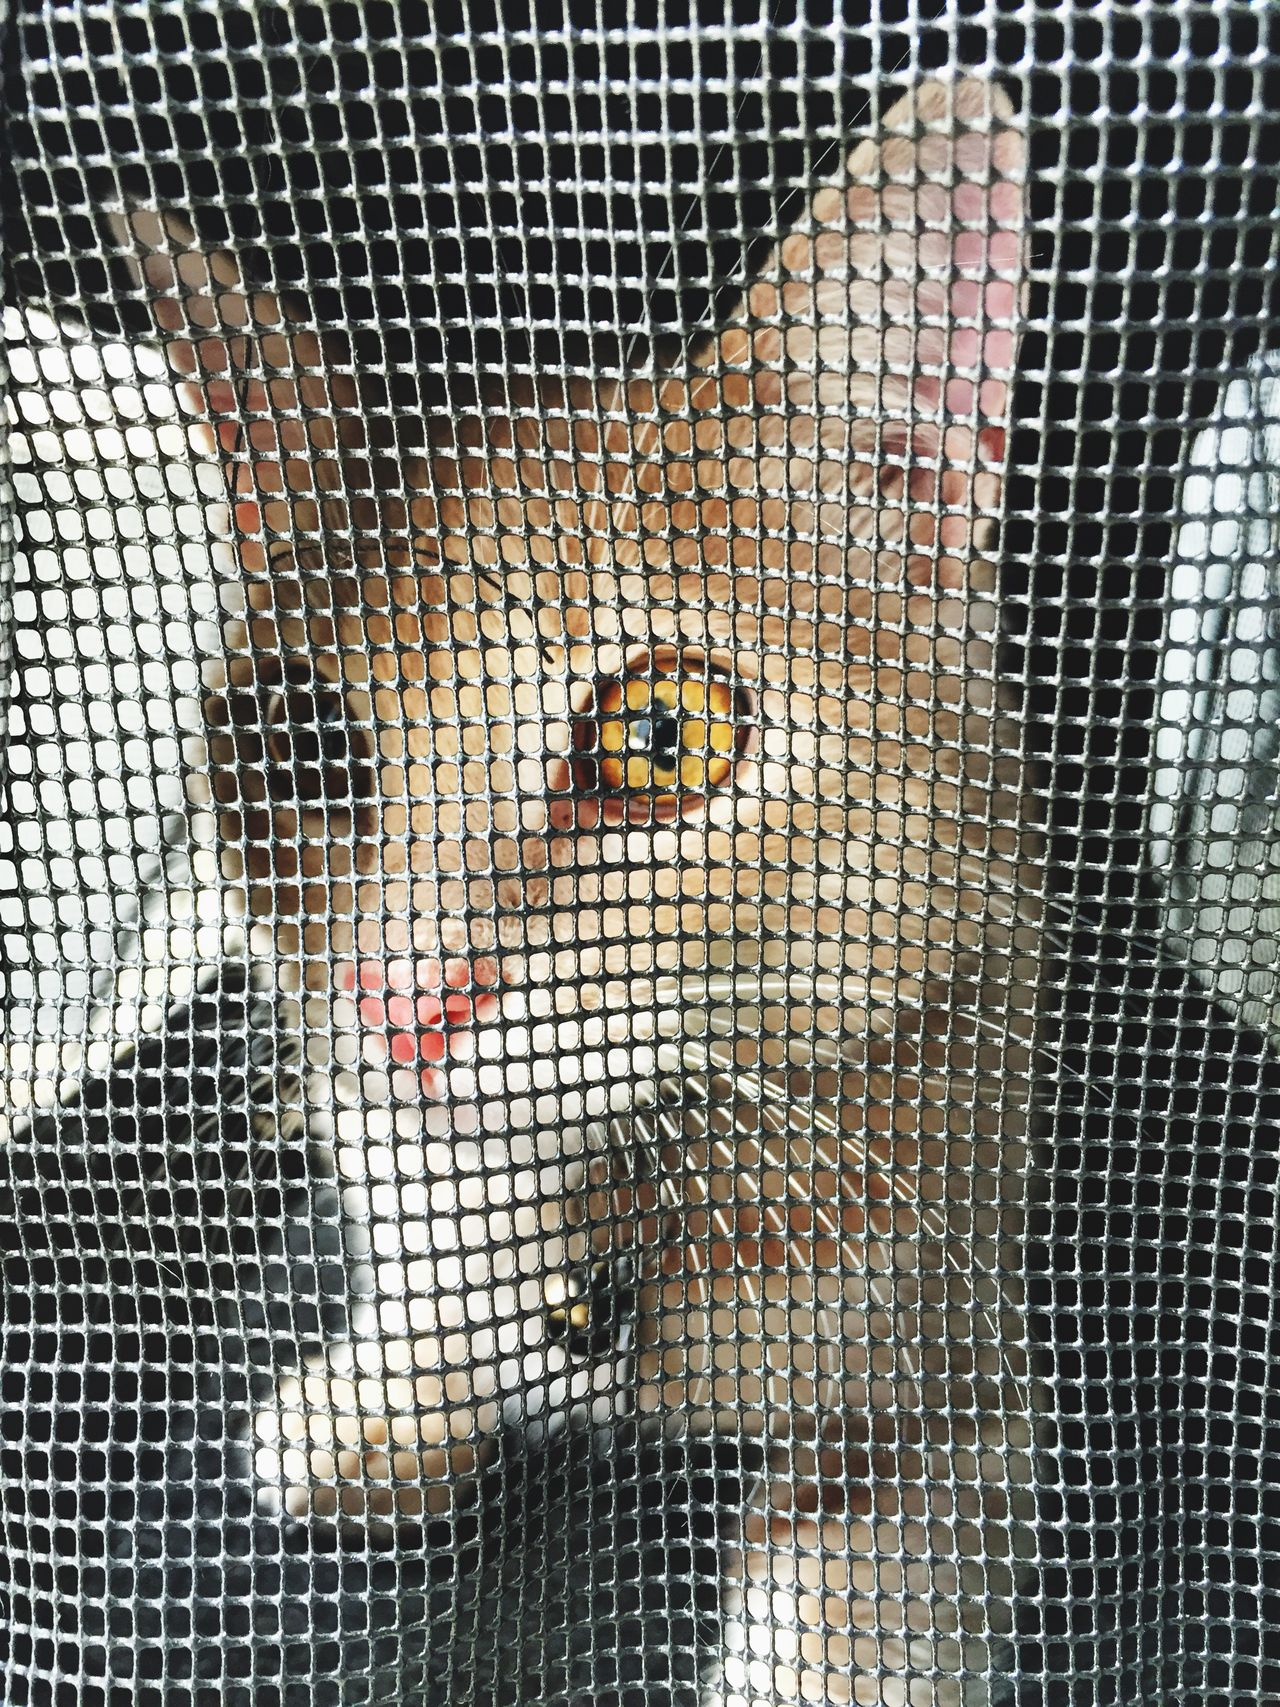 Cage Netting White Color Young Adult Women Birdcage Young Women Close-up Indoors  Mammal Day Cat Pussycat Moby